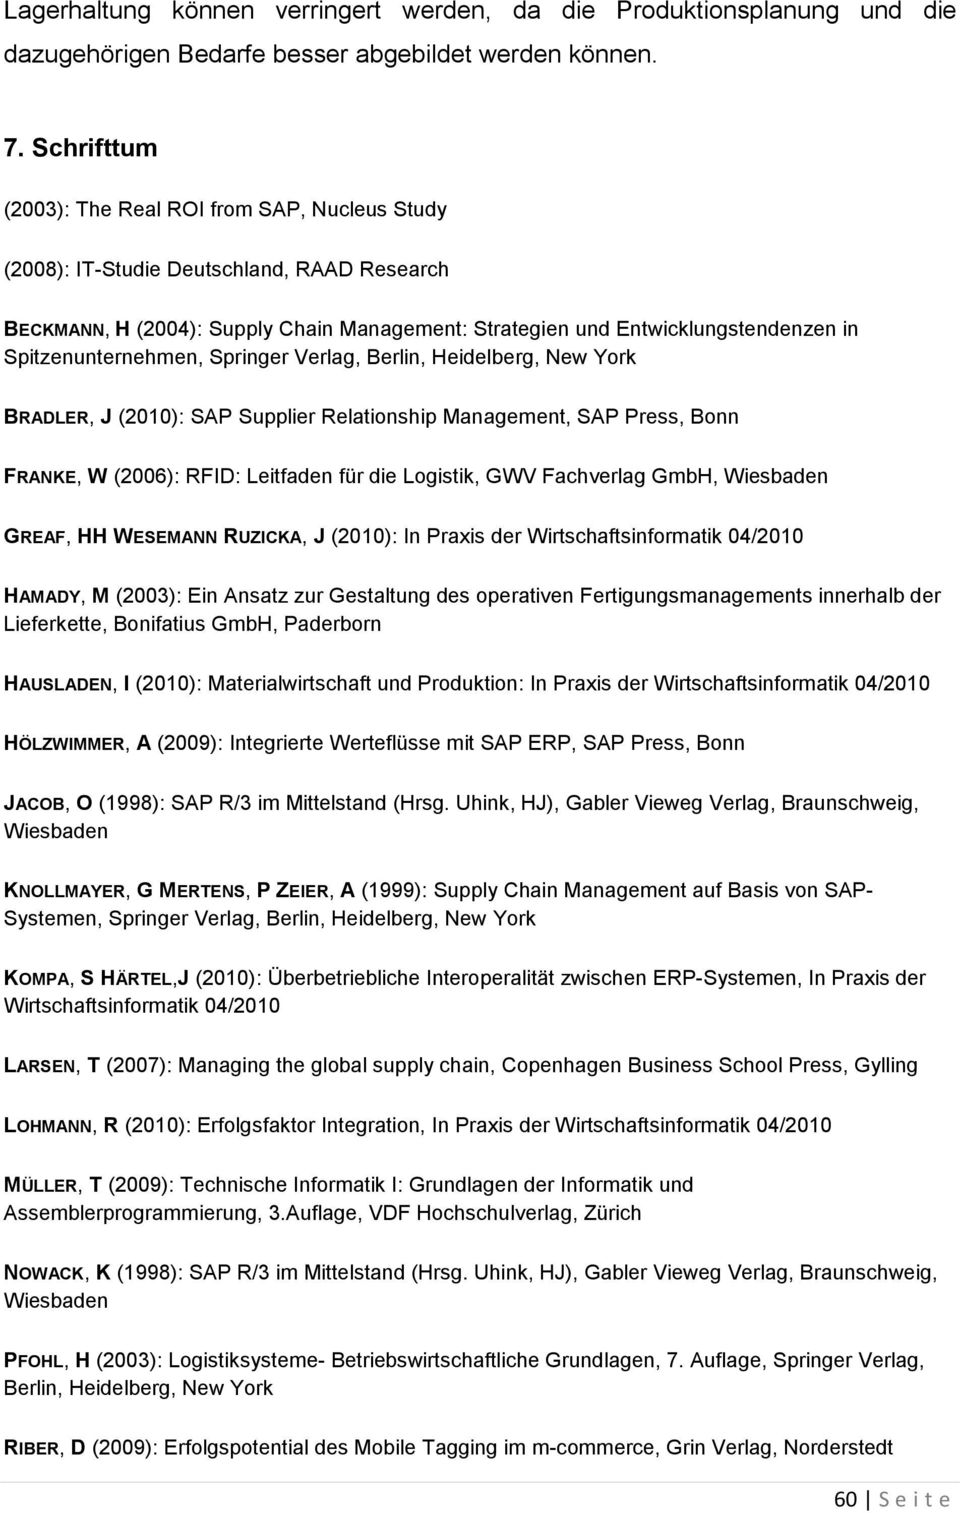 Spitzenunternehmen, Springer Verlag, Berlin, Heidelberg, New York BRADLER, J (2010): SAP Supplier Relationship Management, SAP Press, Bonn FRANKE, W (2006): RFID: Leitfaden für die Logistik, GWV